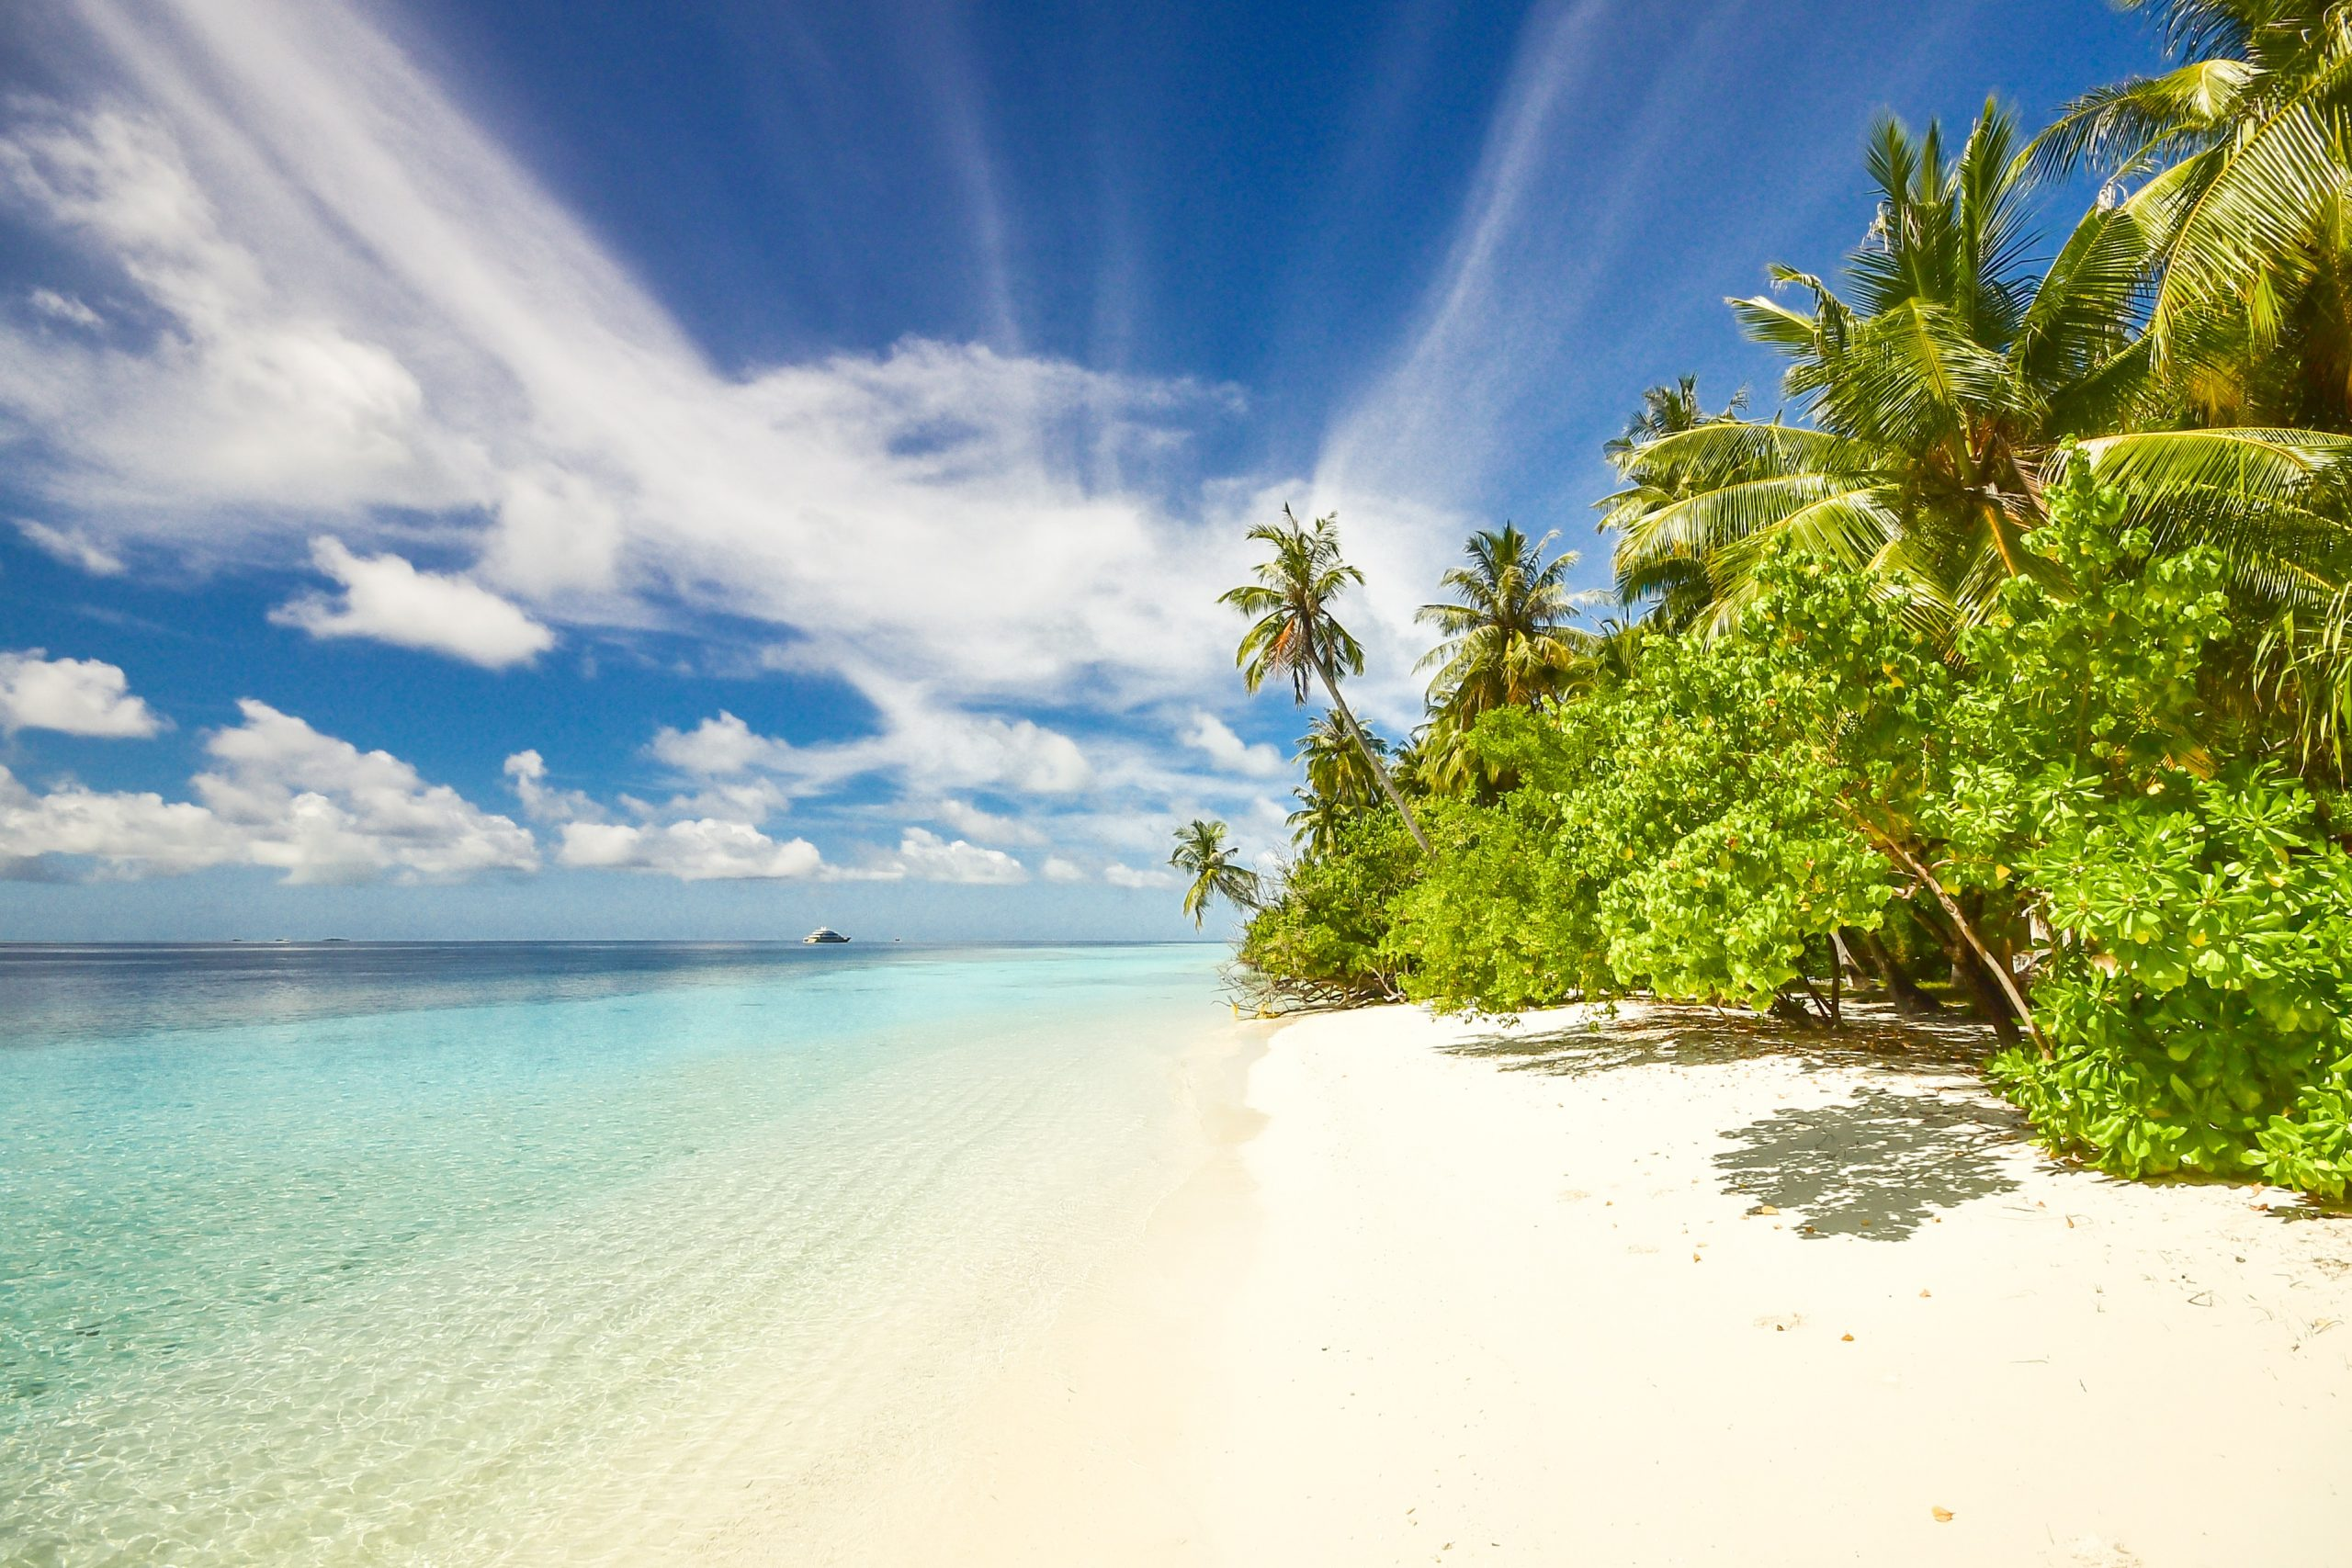 A tropical beach. Coronavirus: UK Foreign Office warns Brits not to travel 'indefinitely'